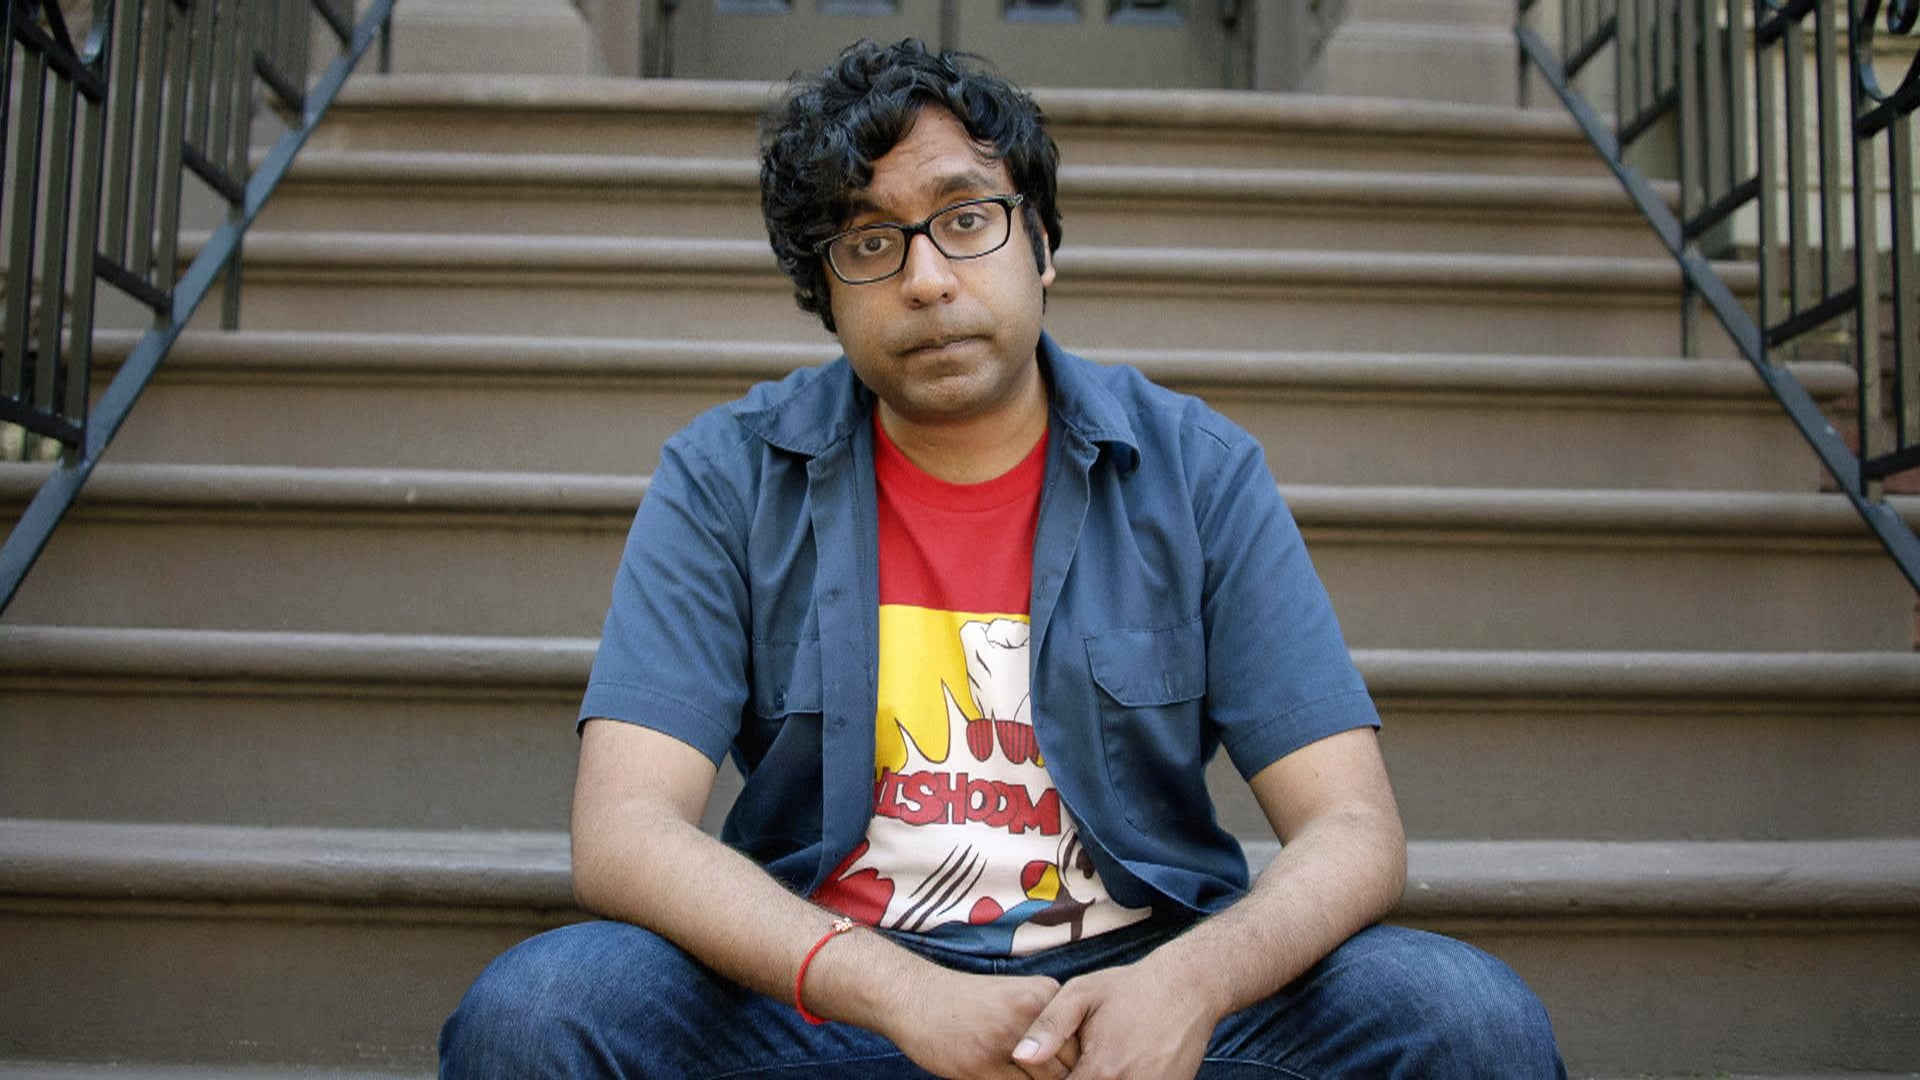 hari-kondabolu humor the-problem-with-apu the-simpsons